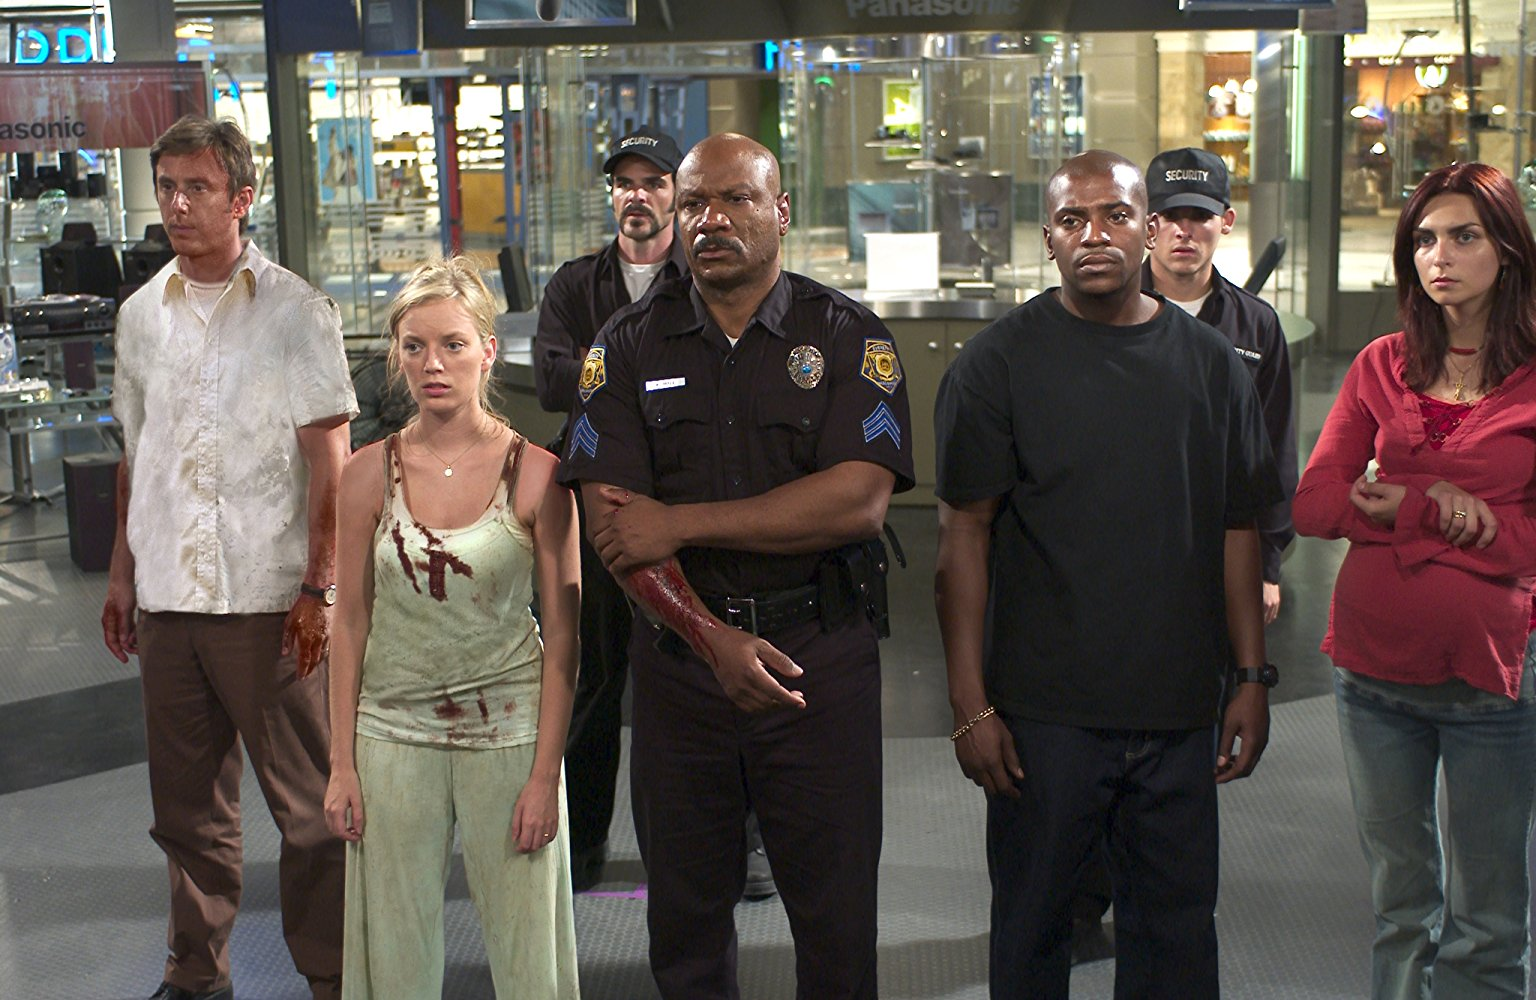 Jake Weber, Sarah Polley, Michael Kelly, Ving Rhames, Mekhi Fifer, Ty Burrell, Inna Korobkina in Dawn of the Dead (2004)